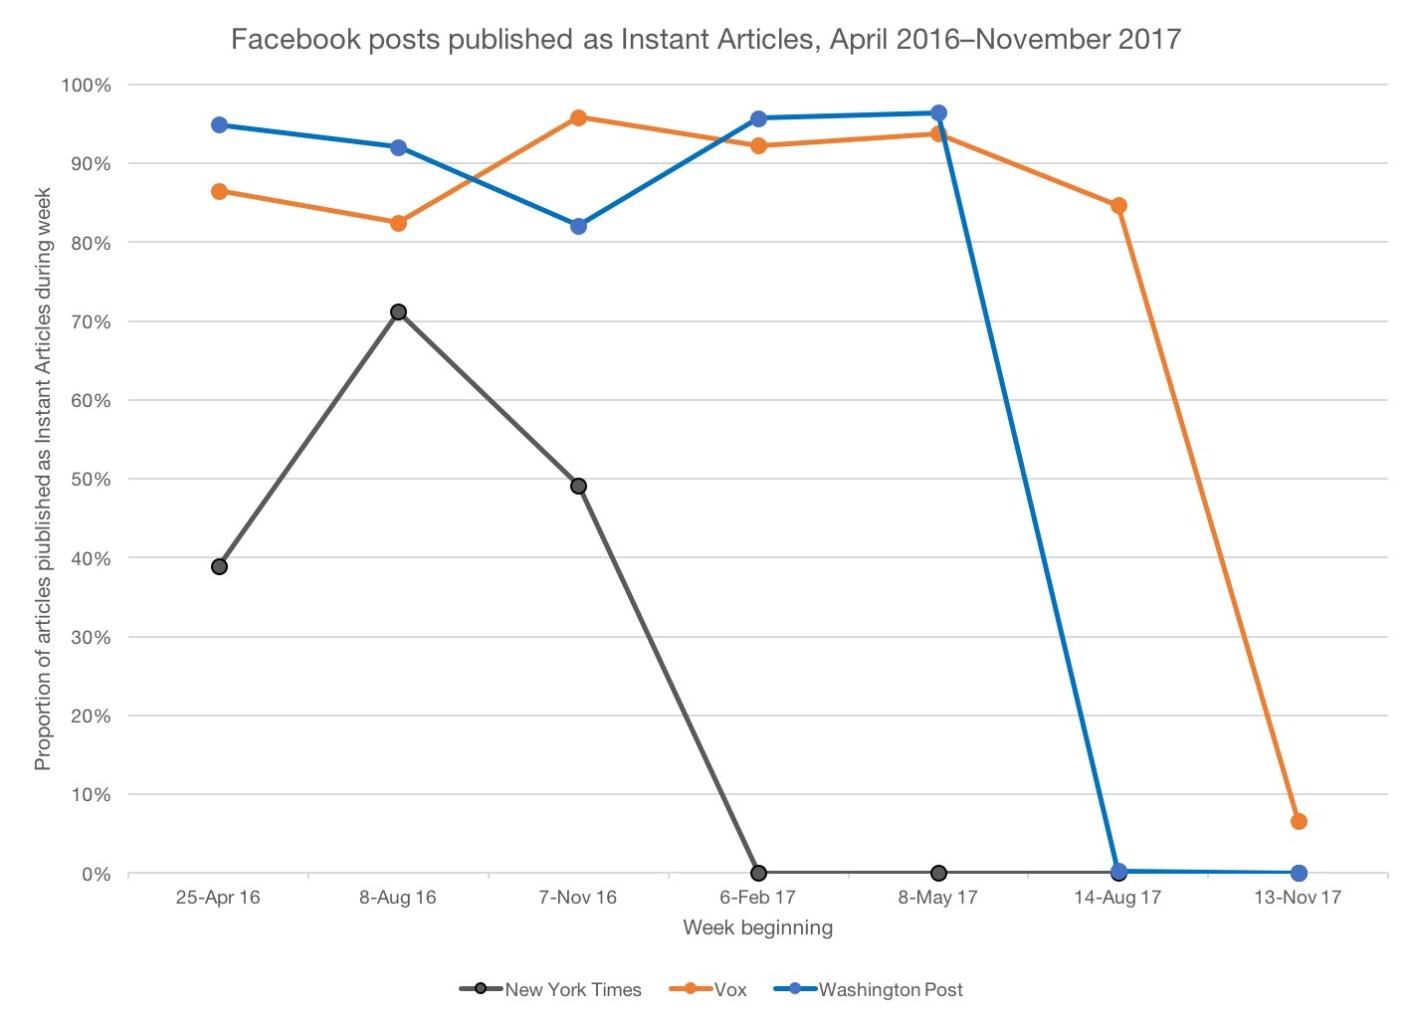 Facebook Instant Articles Usage